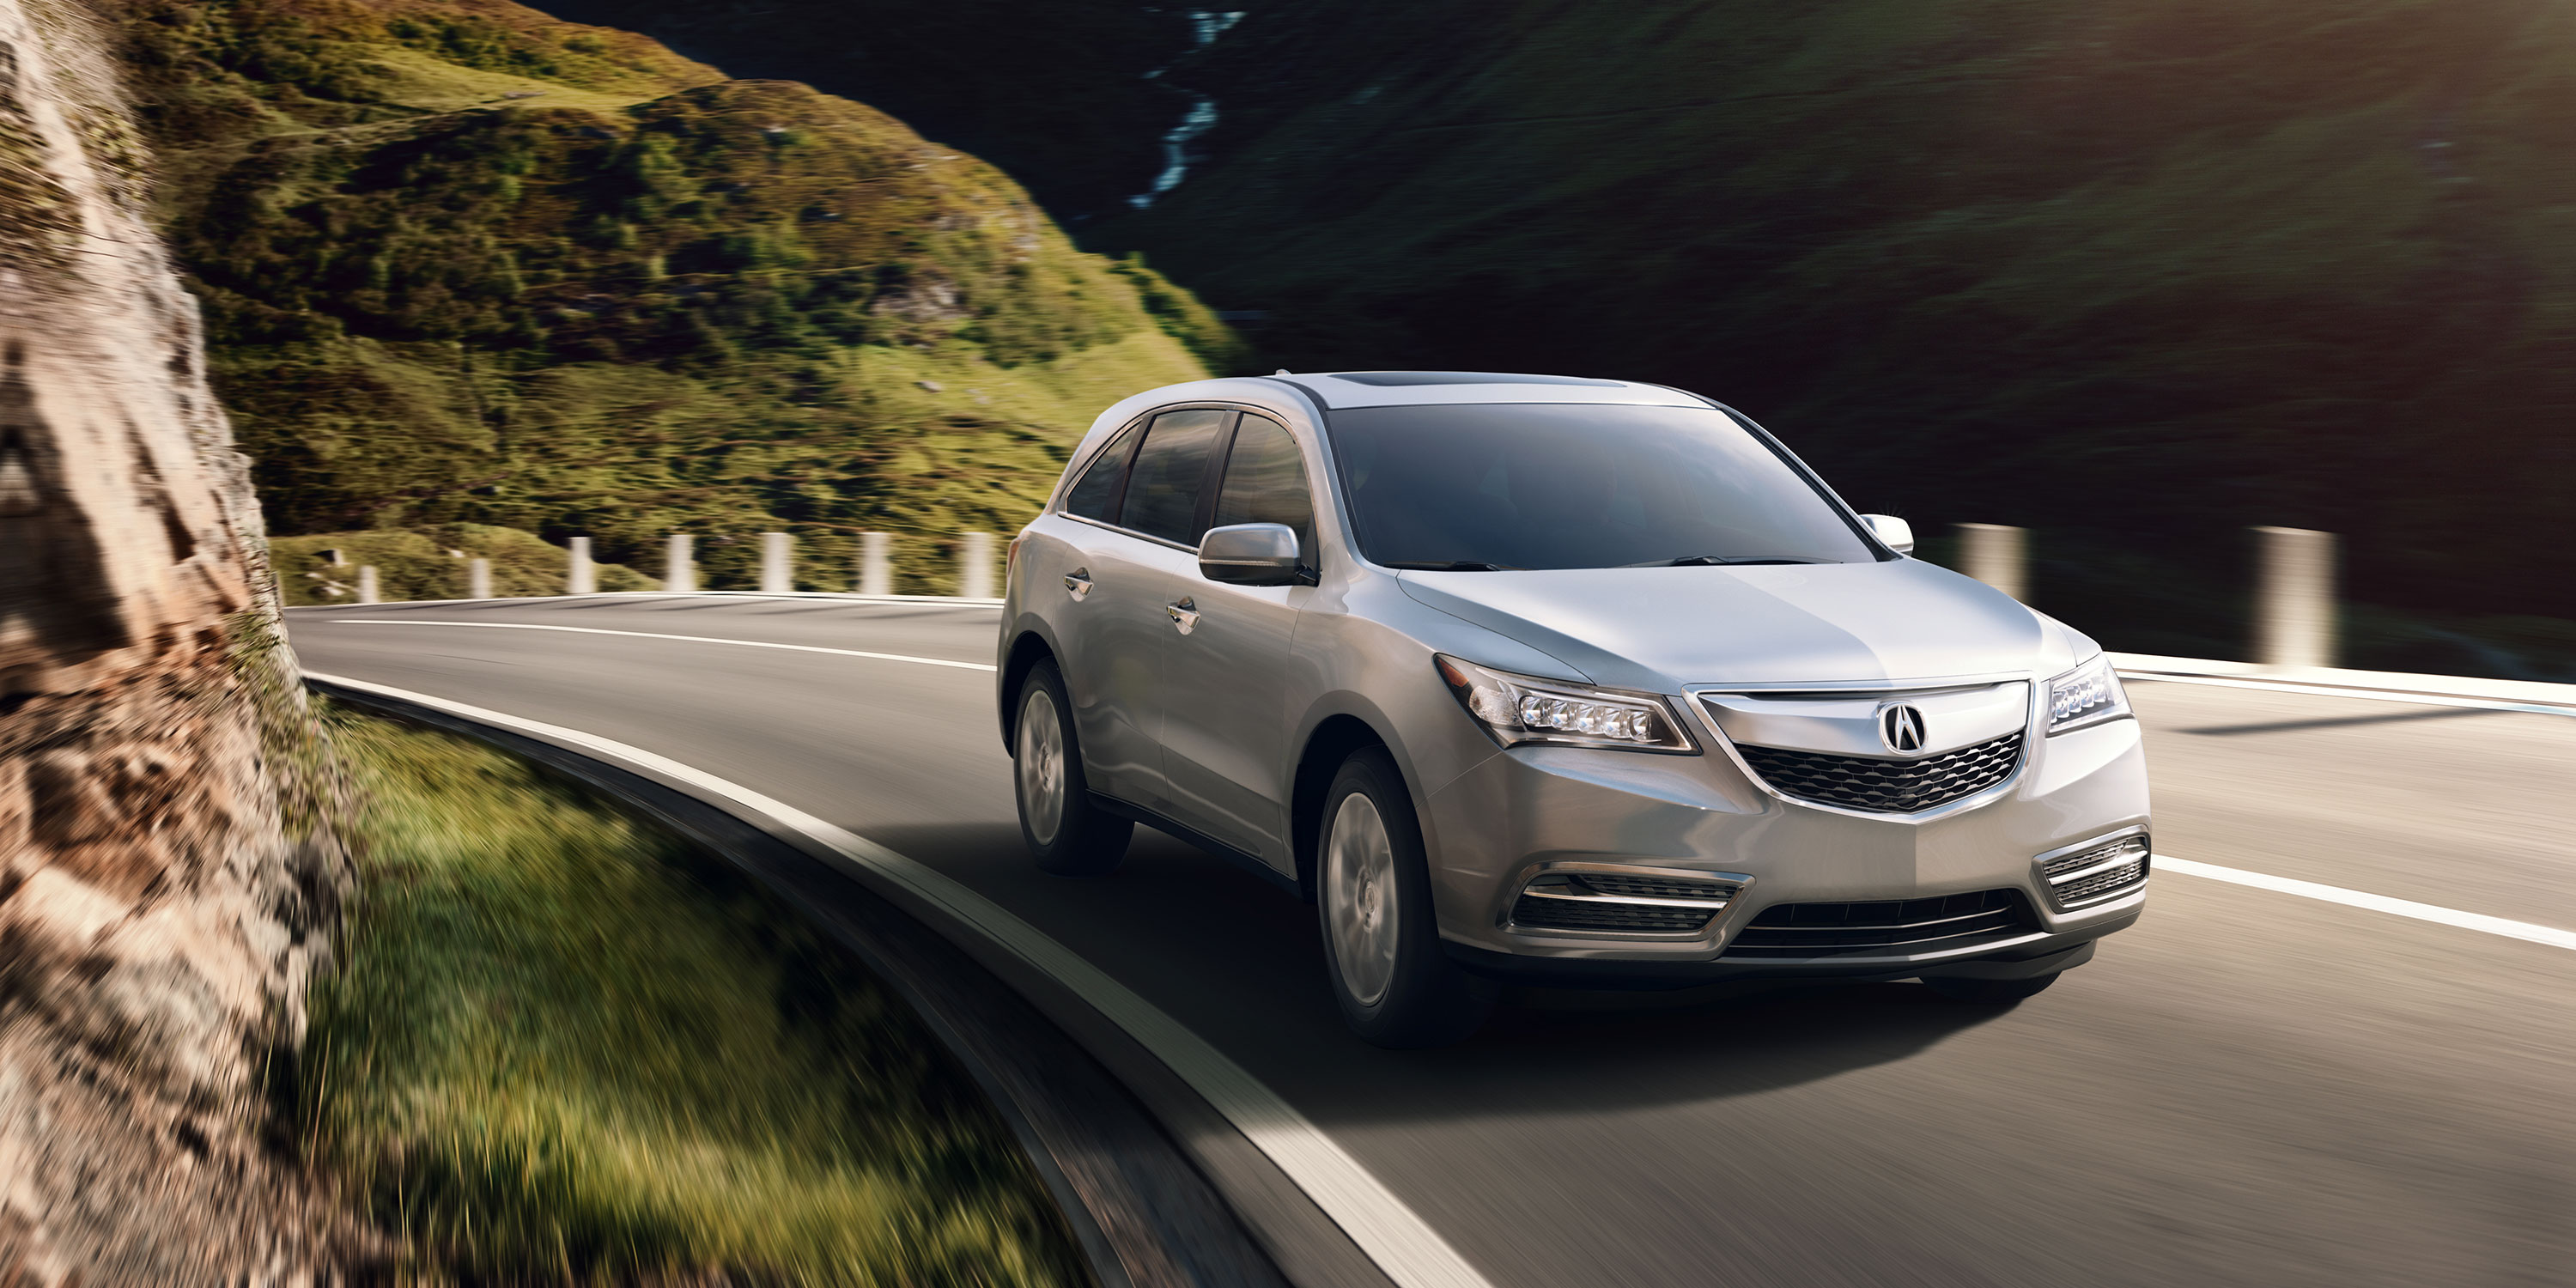 release sport with powerful suv en mdx electrifies news acura hybrid and efficient lineup